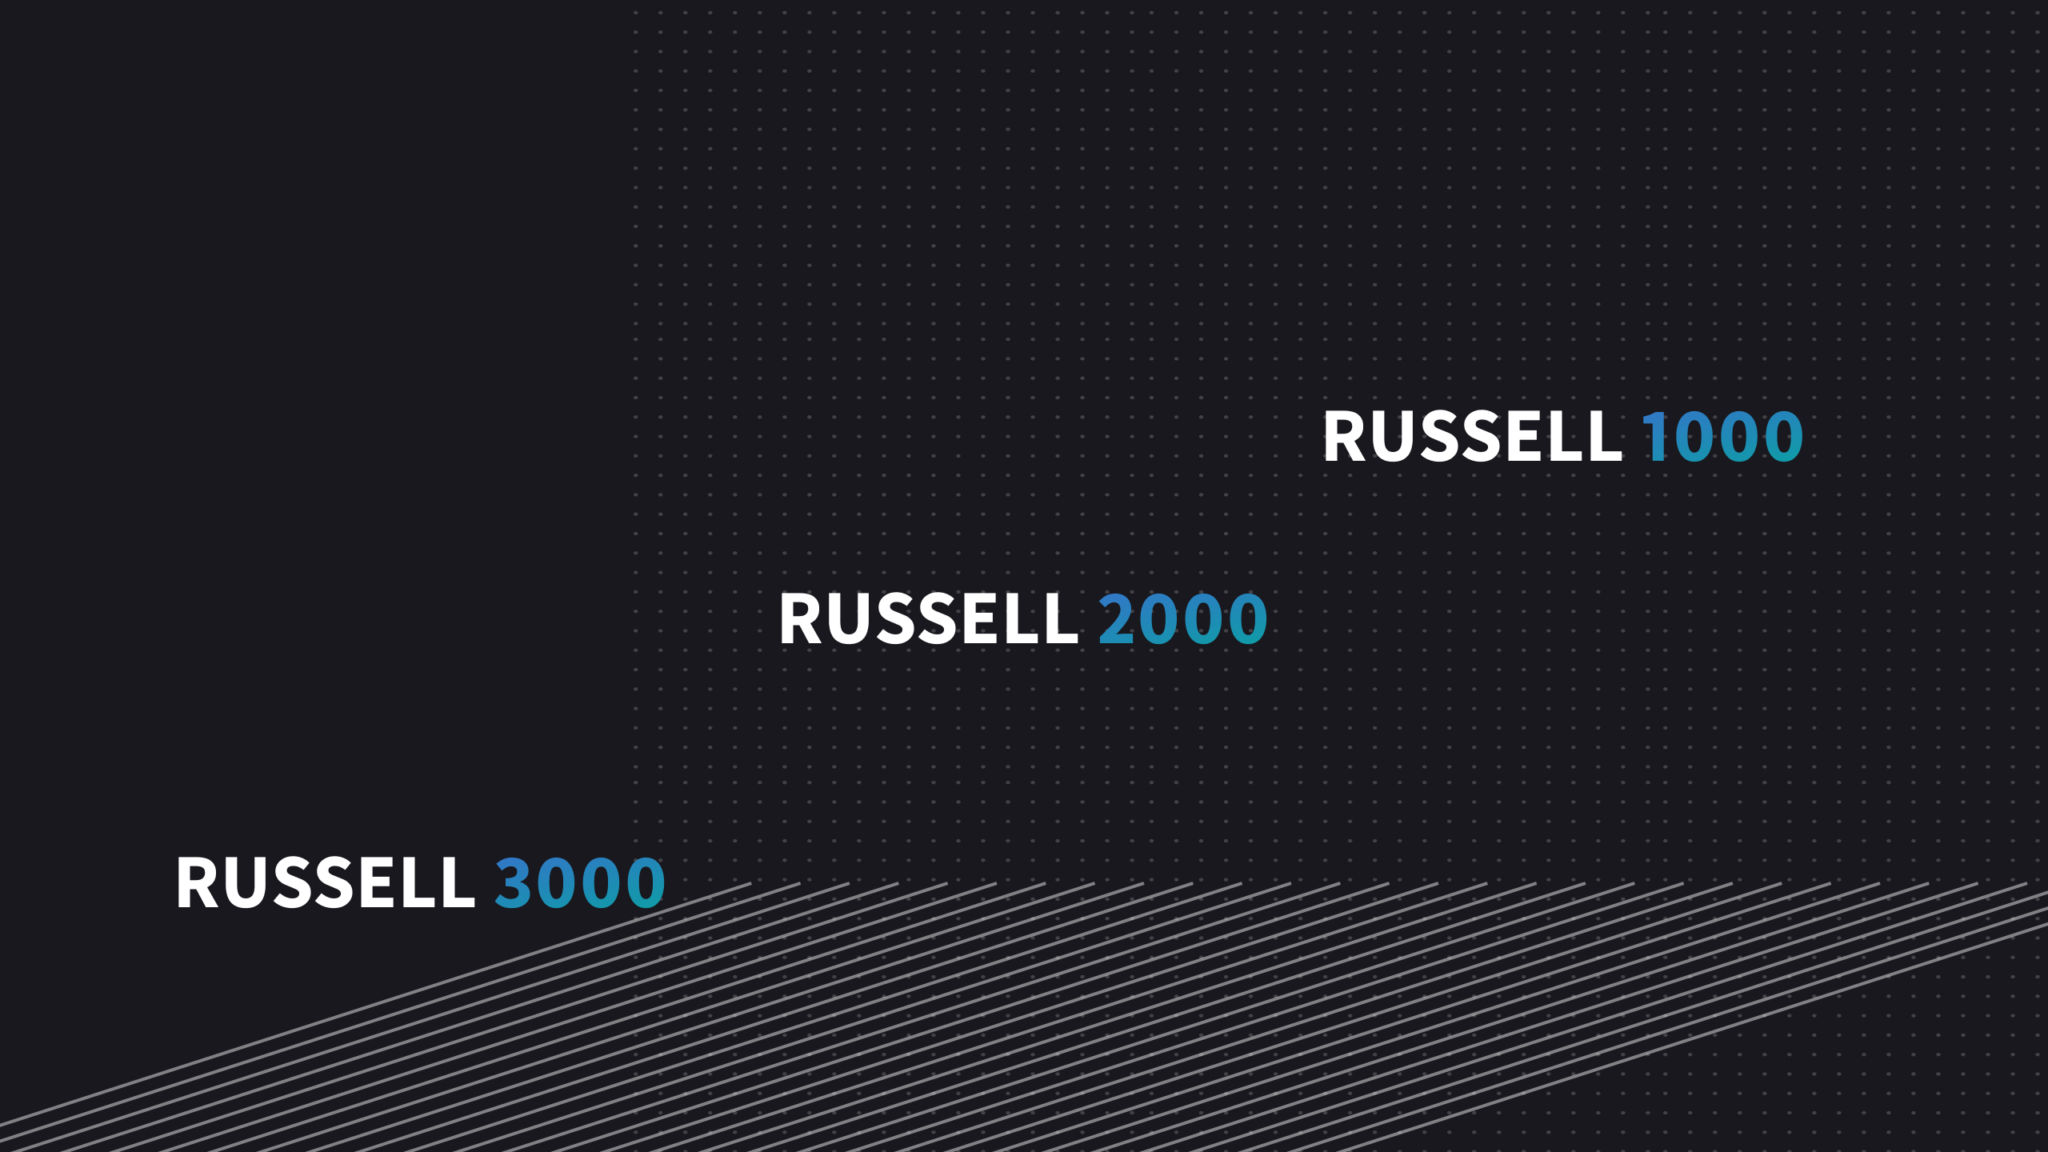 The Russell Reconstitution_Changes to the Russell 1000, 2000, 3000 Indexes